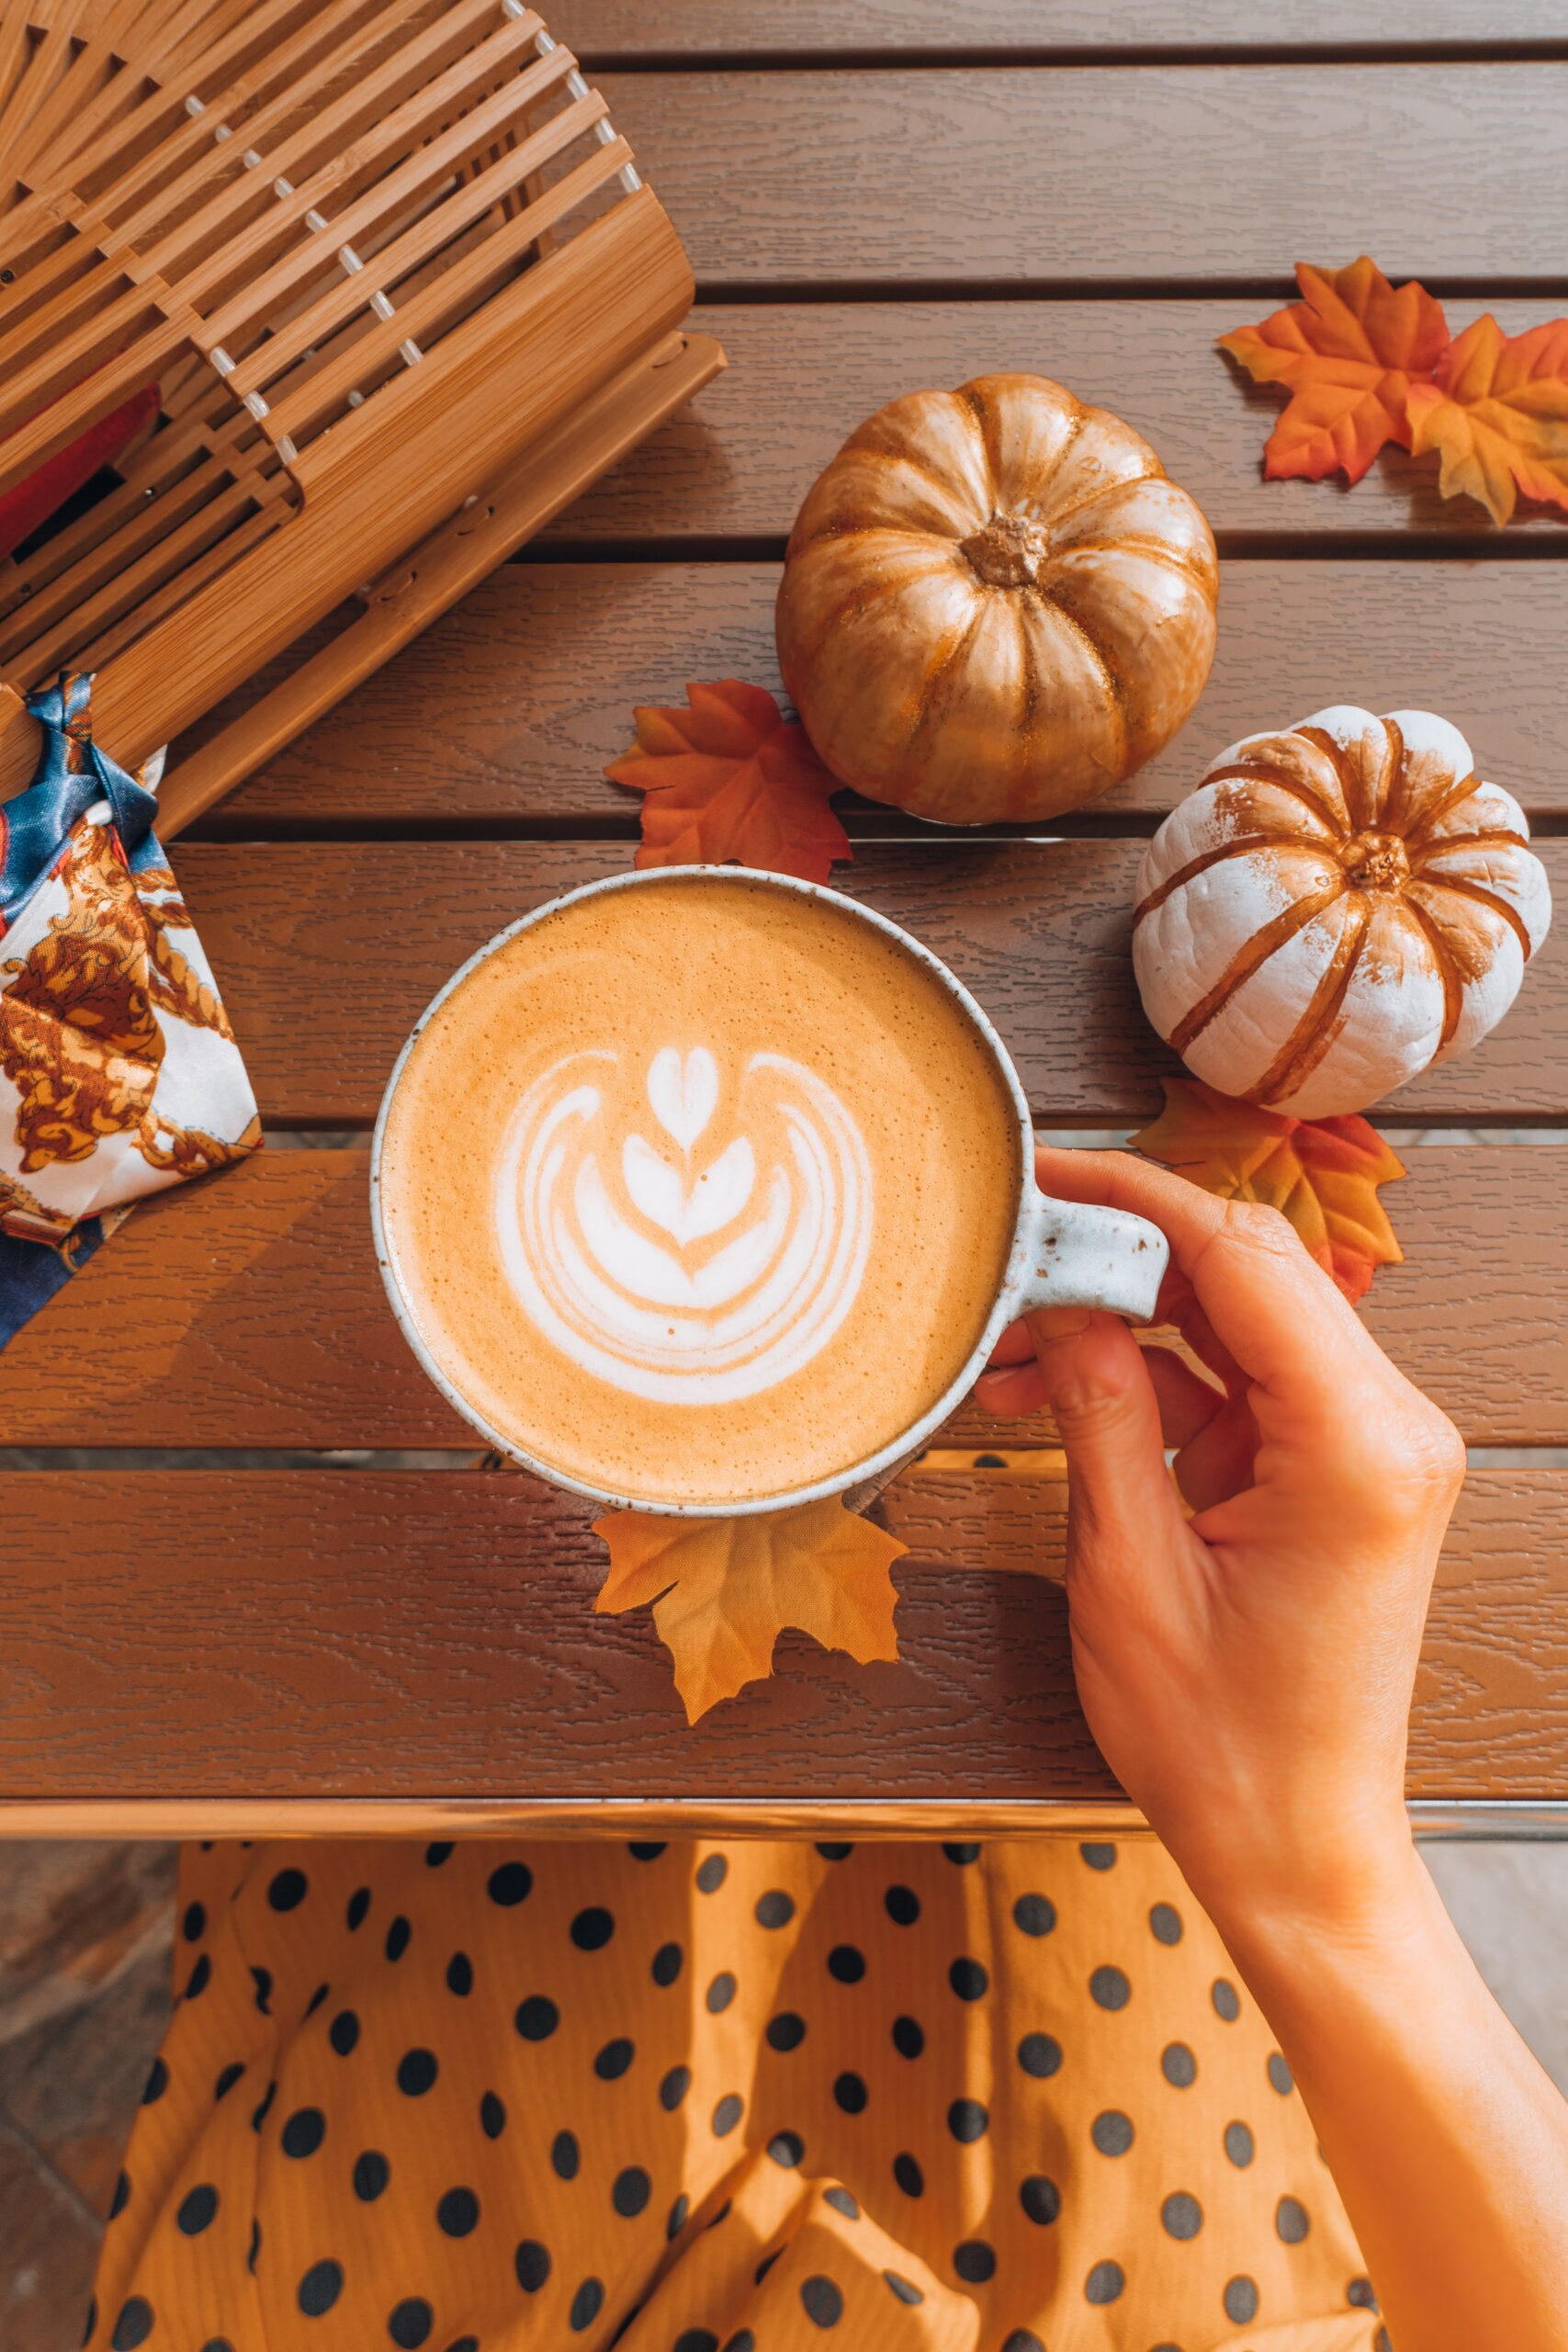 9 Pumpkin Spice Recipes to Make This Fall